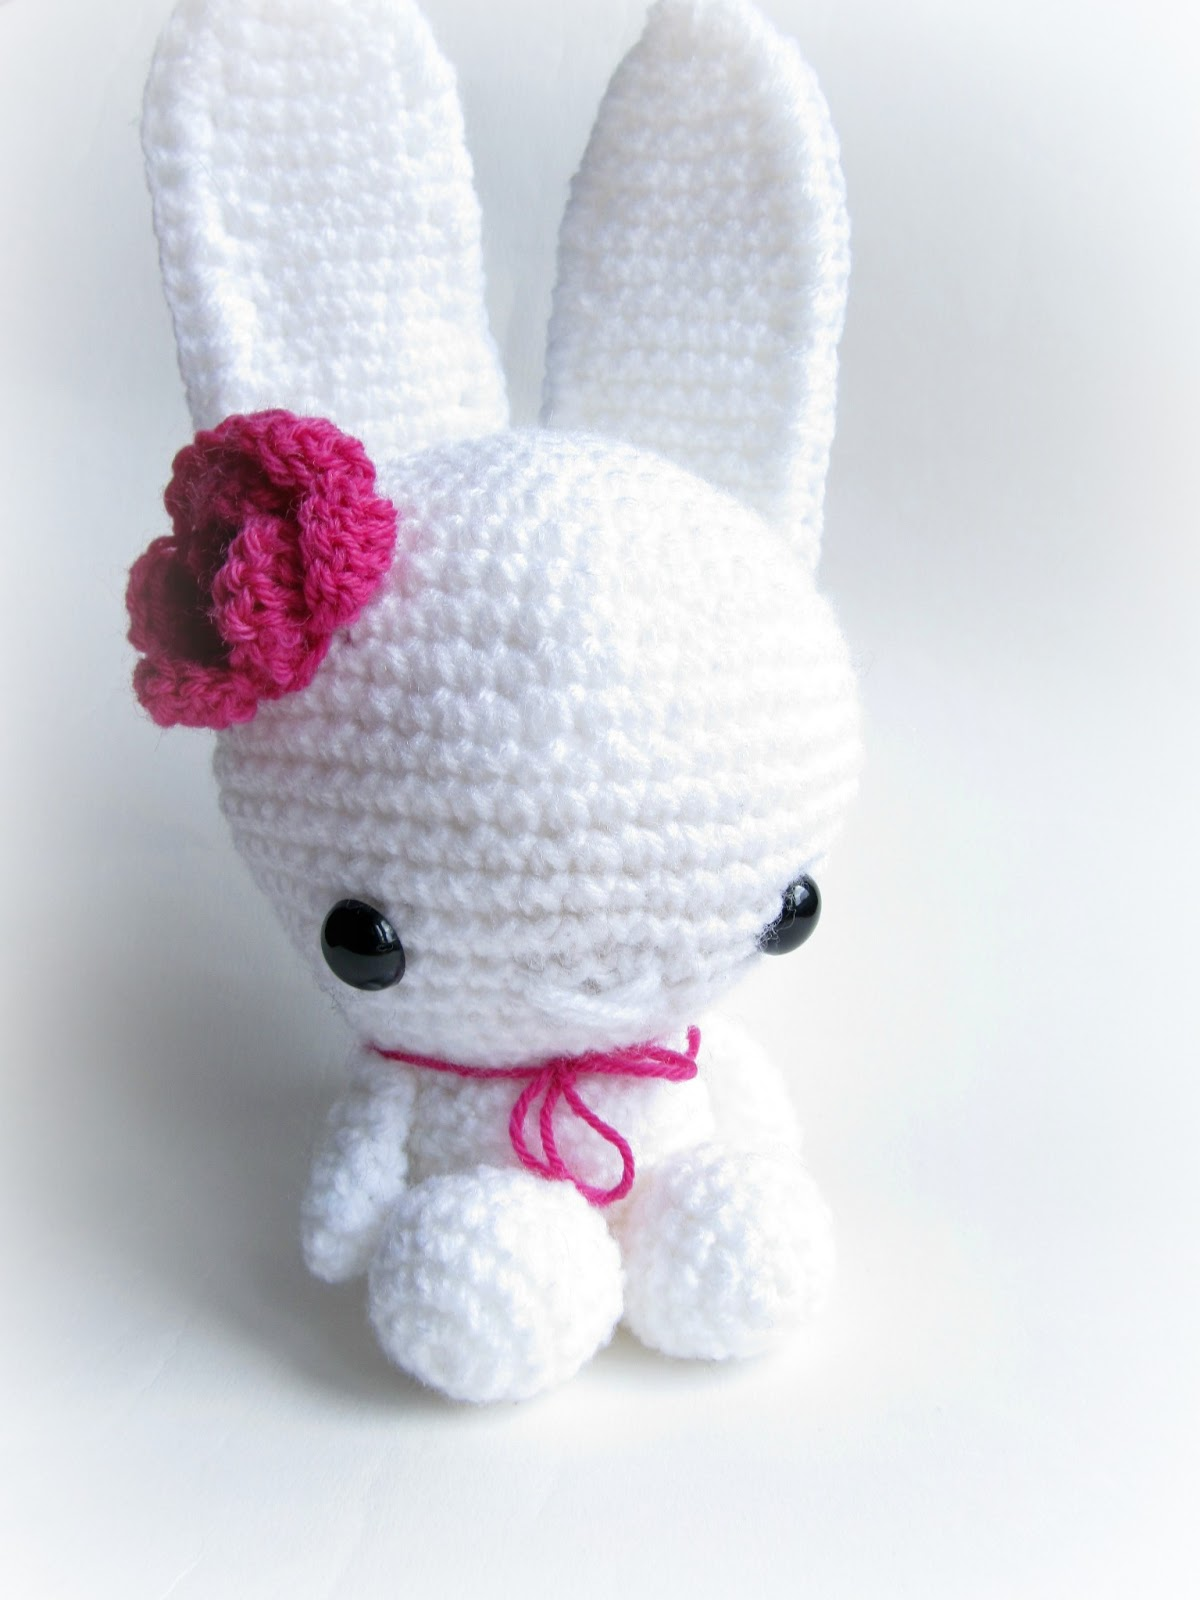 Amigurumi Head And Body : {White Amigurumi Bunny} - Little Things Blogged